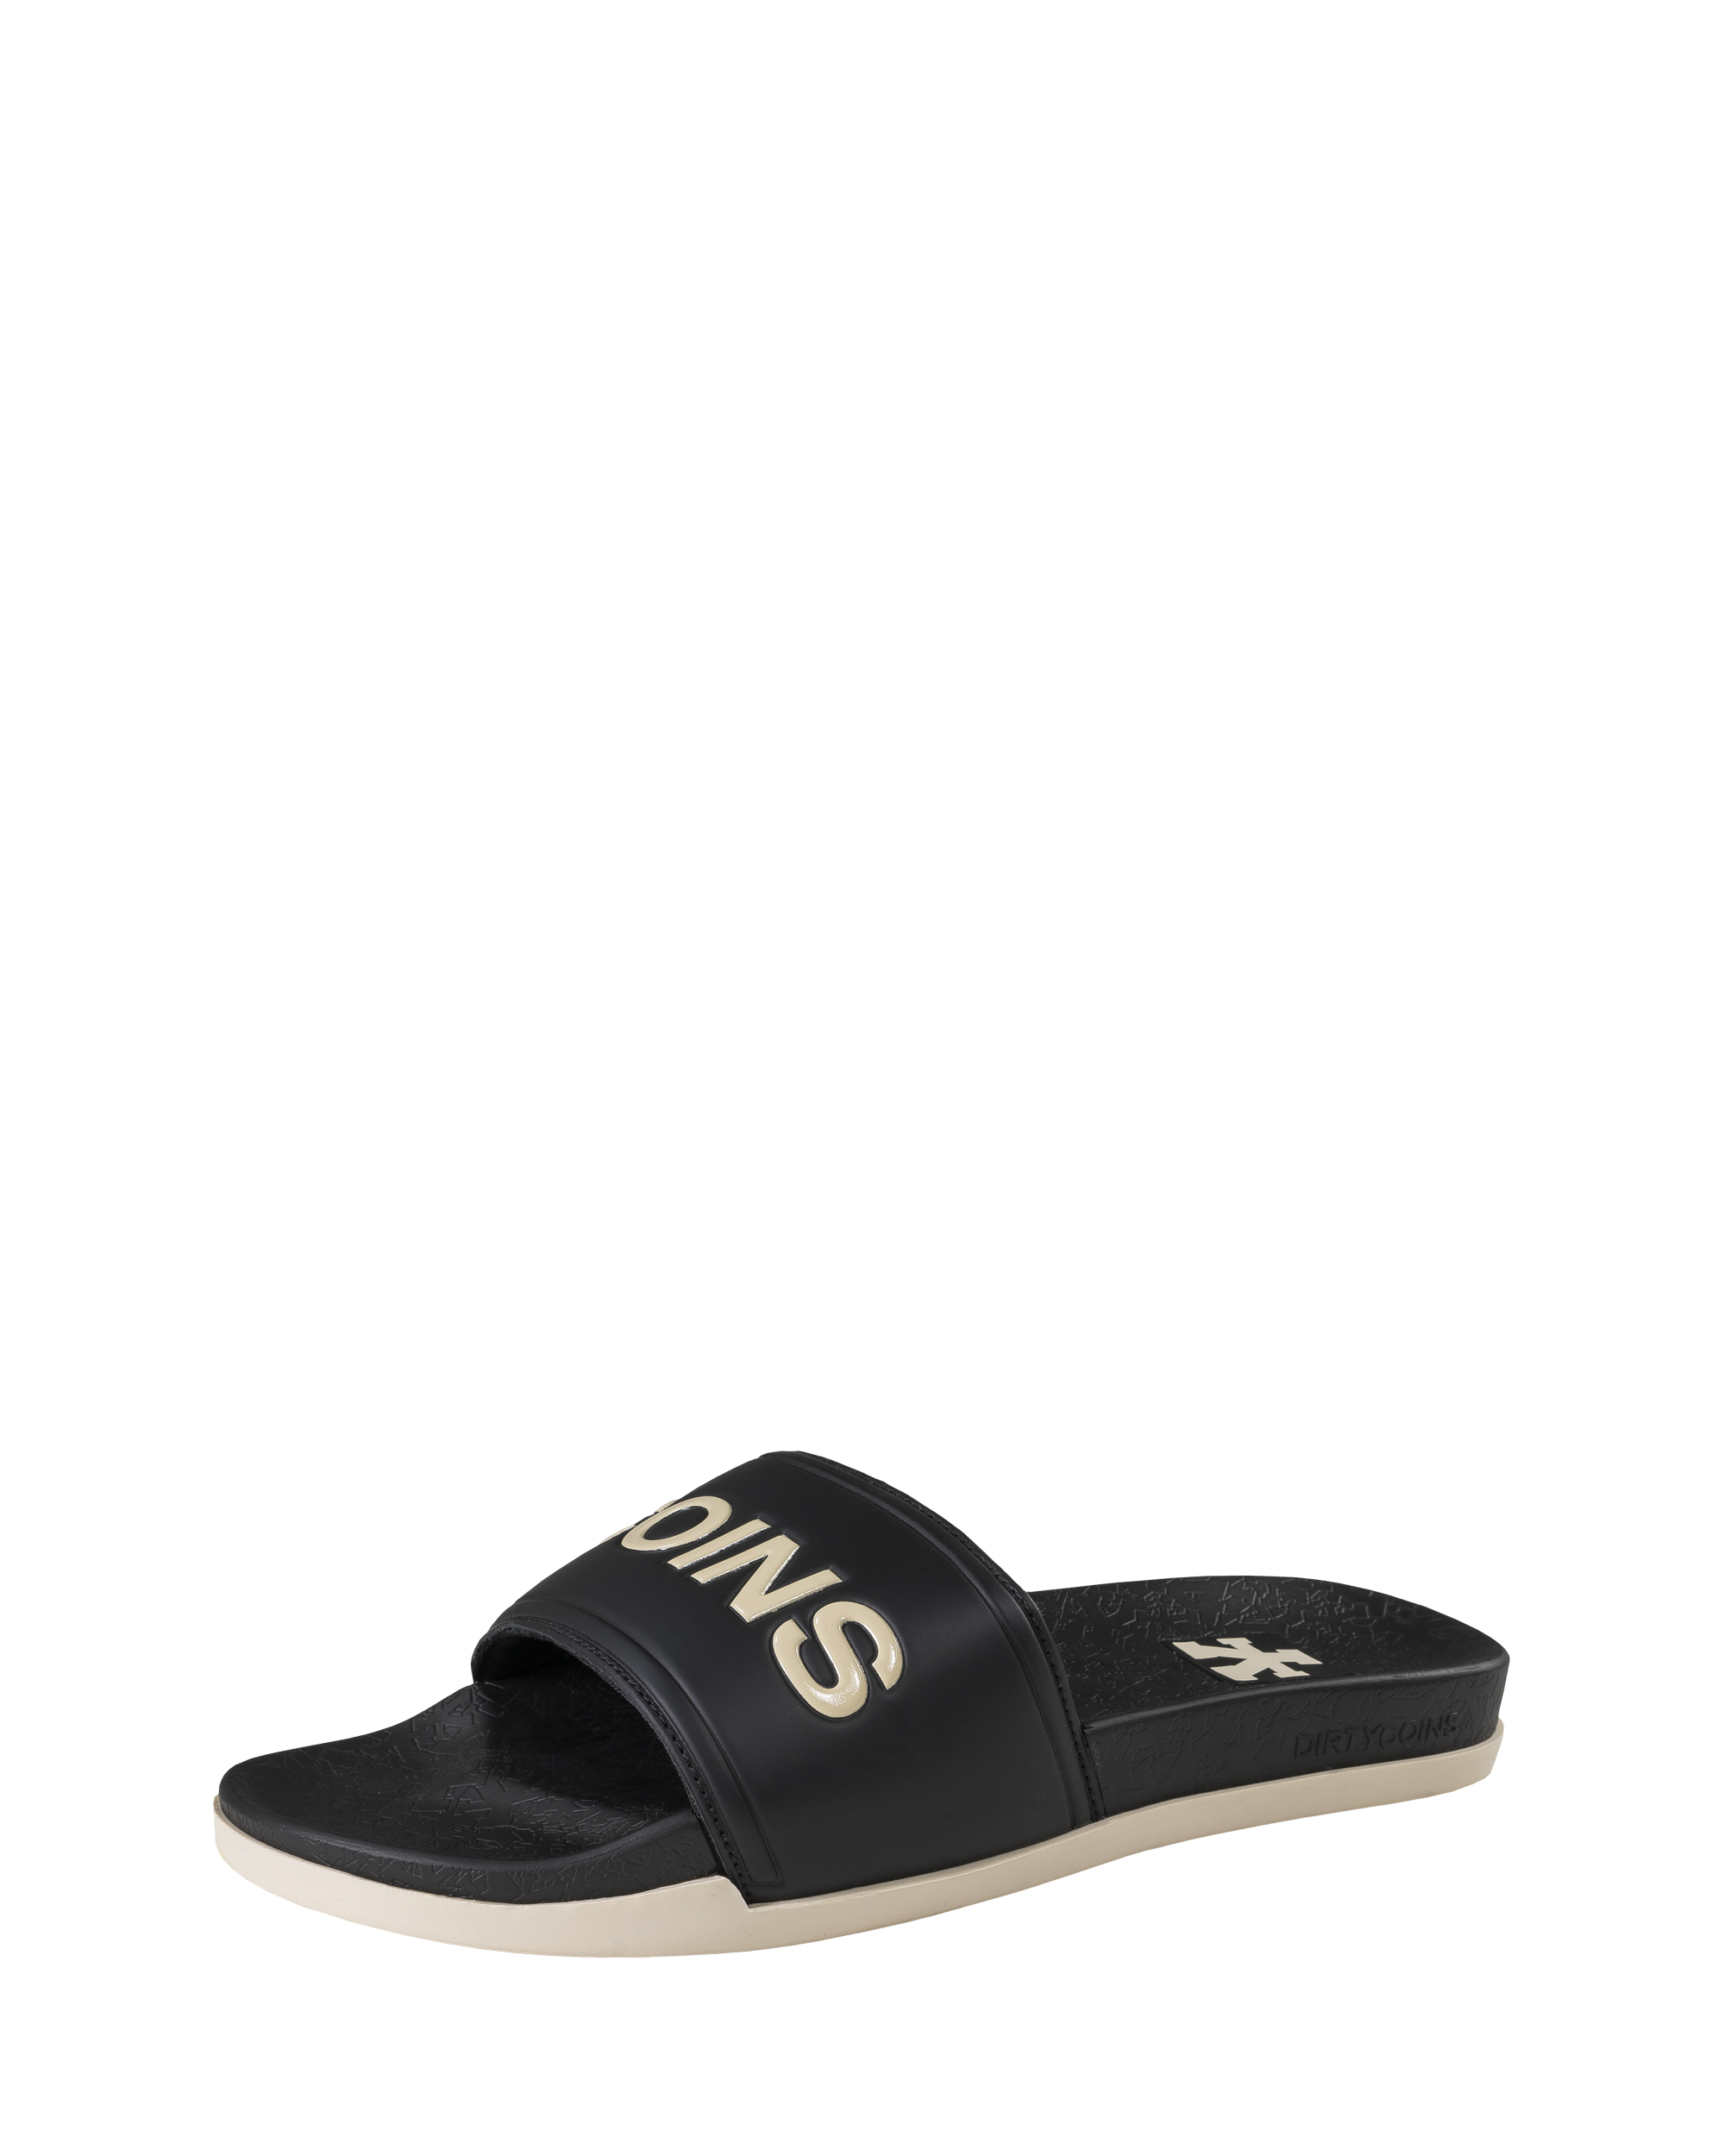 DirtyCoins Slide - Black/Tan